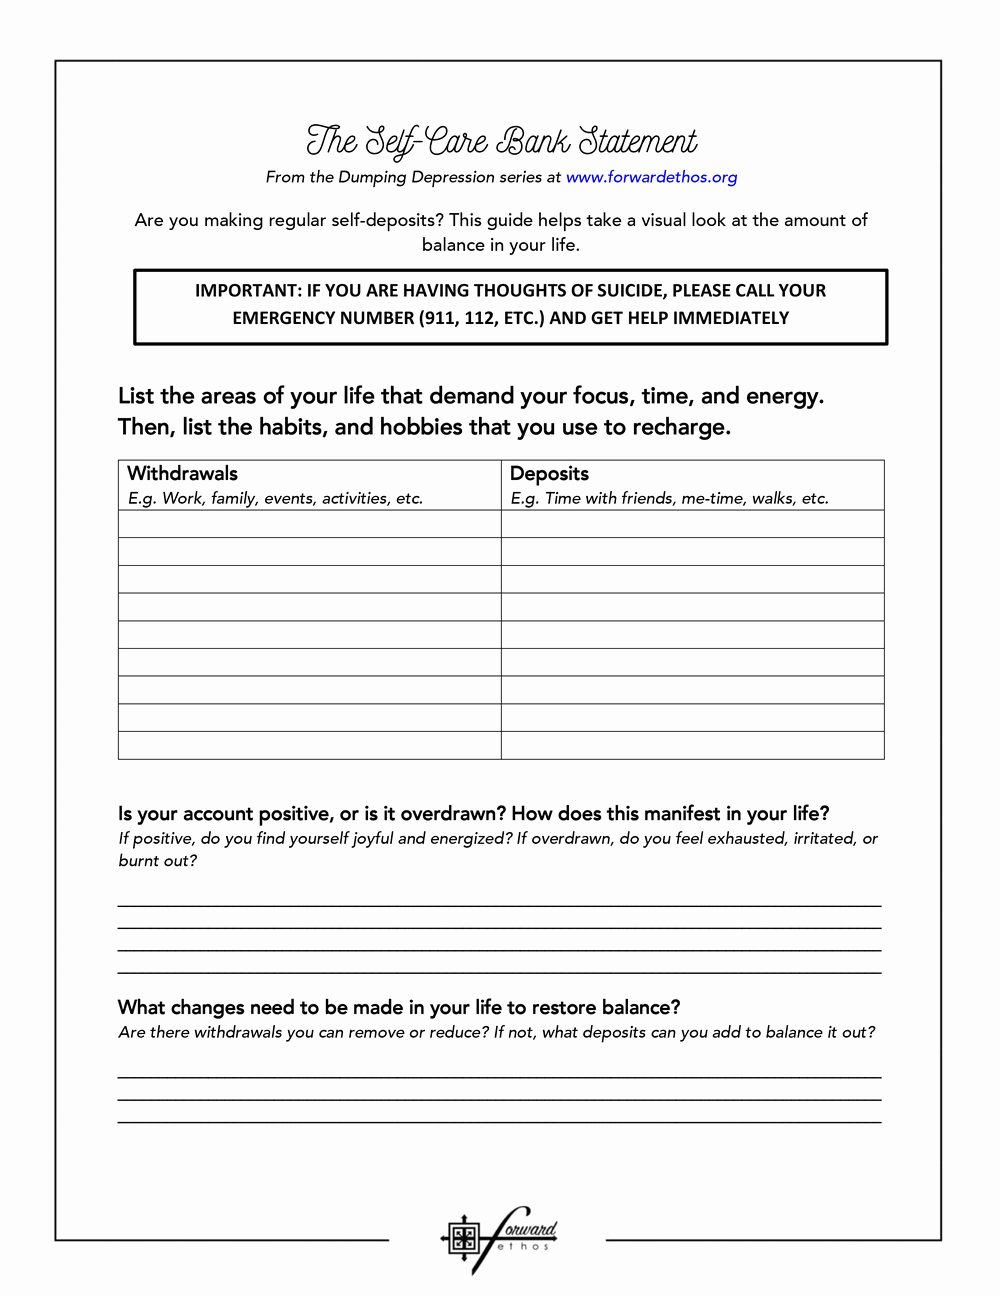 I Feel Statements Worksheet Best Of Self Care Bank Statement — forward Ethos